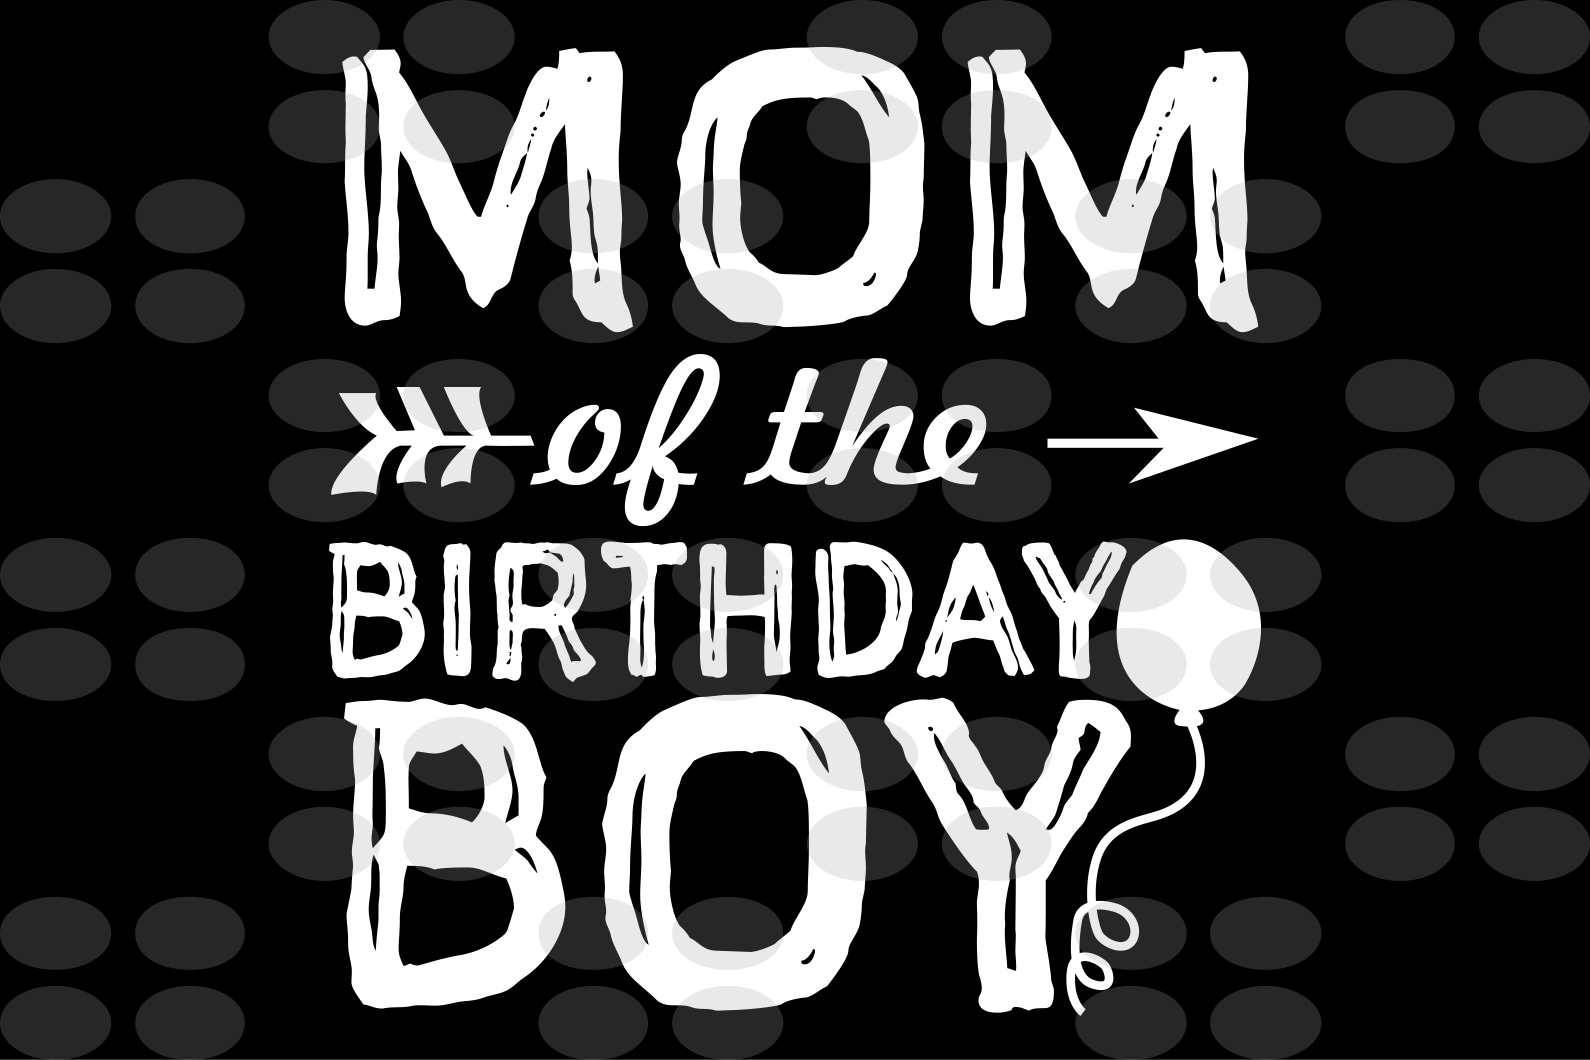 Mom of the birthday boy SVG,mother's day svg, mother day, mother svg,  nana svg, mimi svg For Silhouette, Files For Cricut, SVG, DXF, EPS, PNG Instant Download